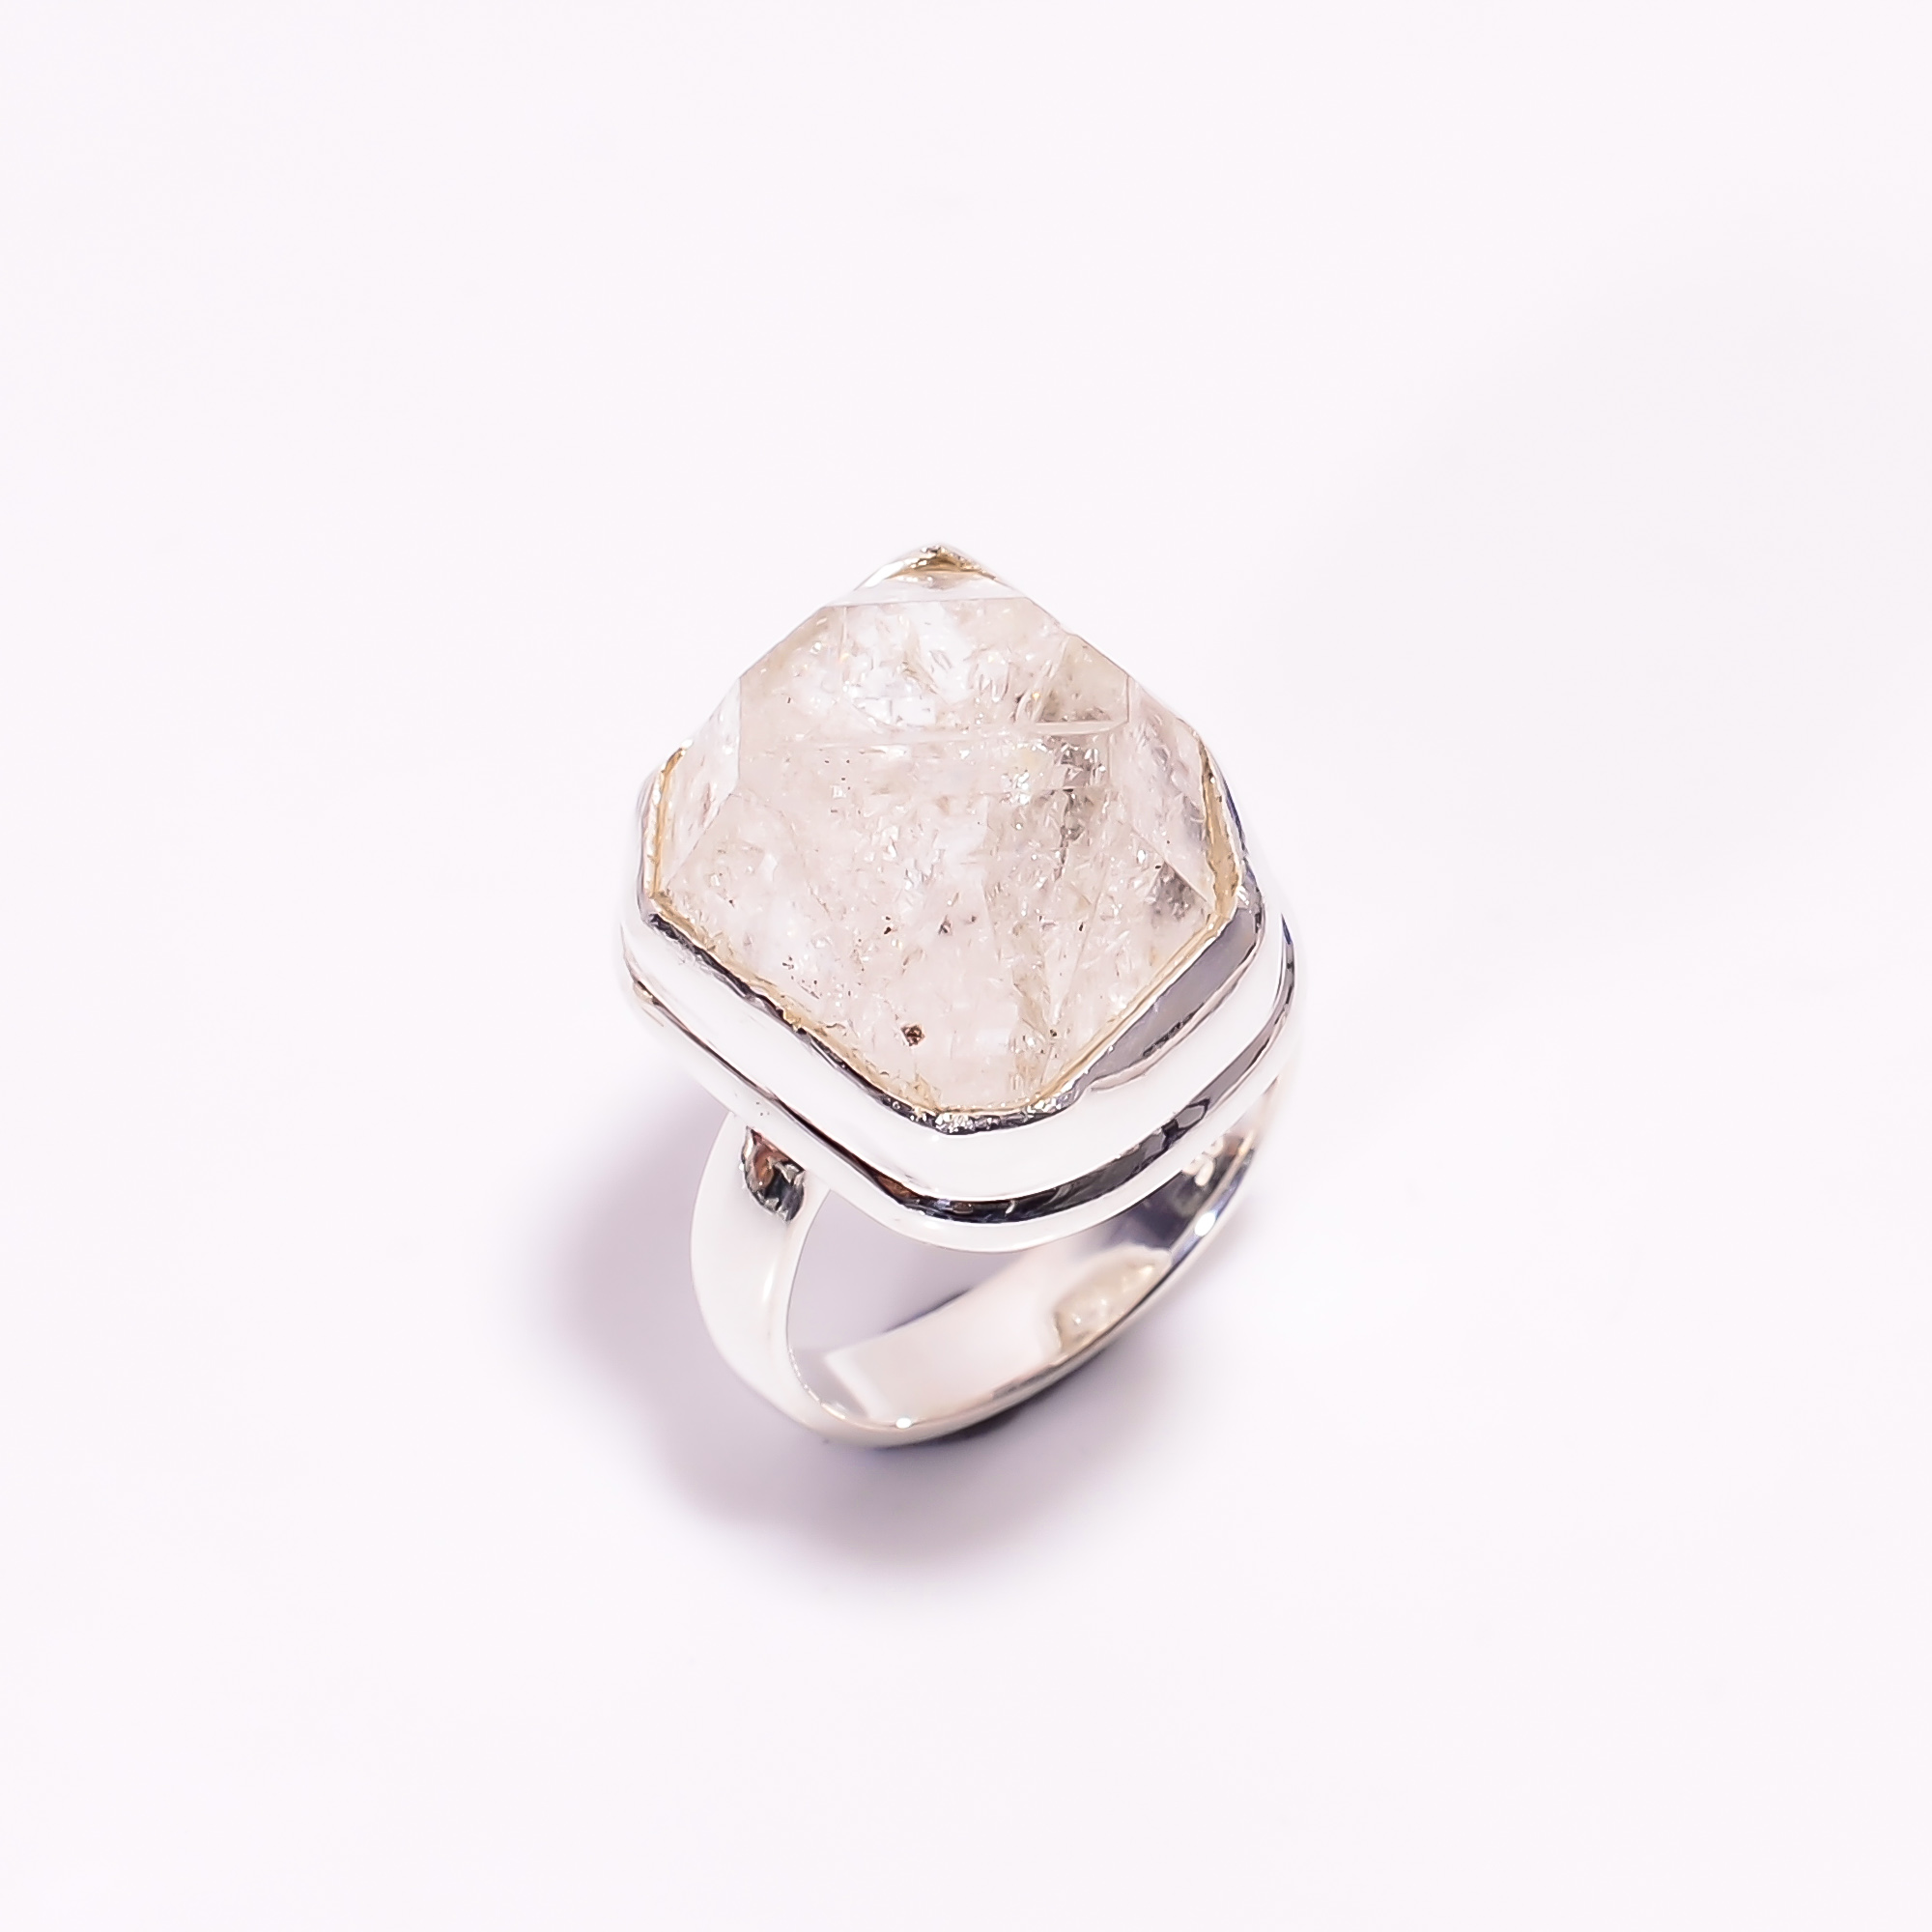 Natural Herkimer Diamond 925 Sterling Silver Ring Size US 6